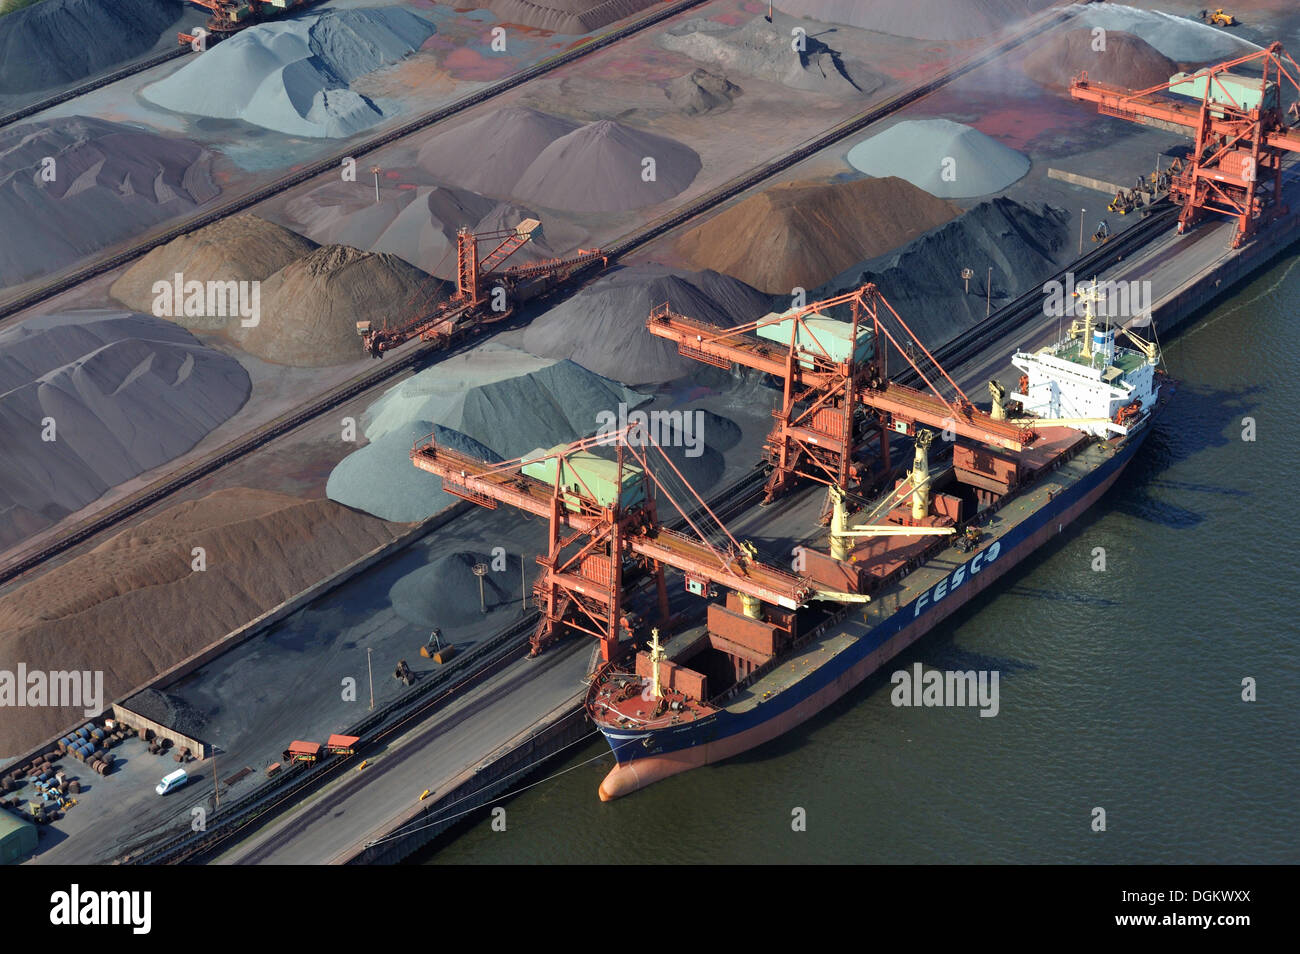 Aerial view, a ship of the Russian Far Eastern Shipping Company is unloading Russian ore, Hamburger Hansaport, Hamburg, Hamburg - Stock Image